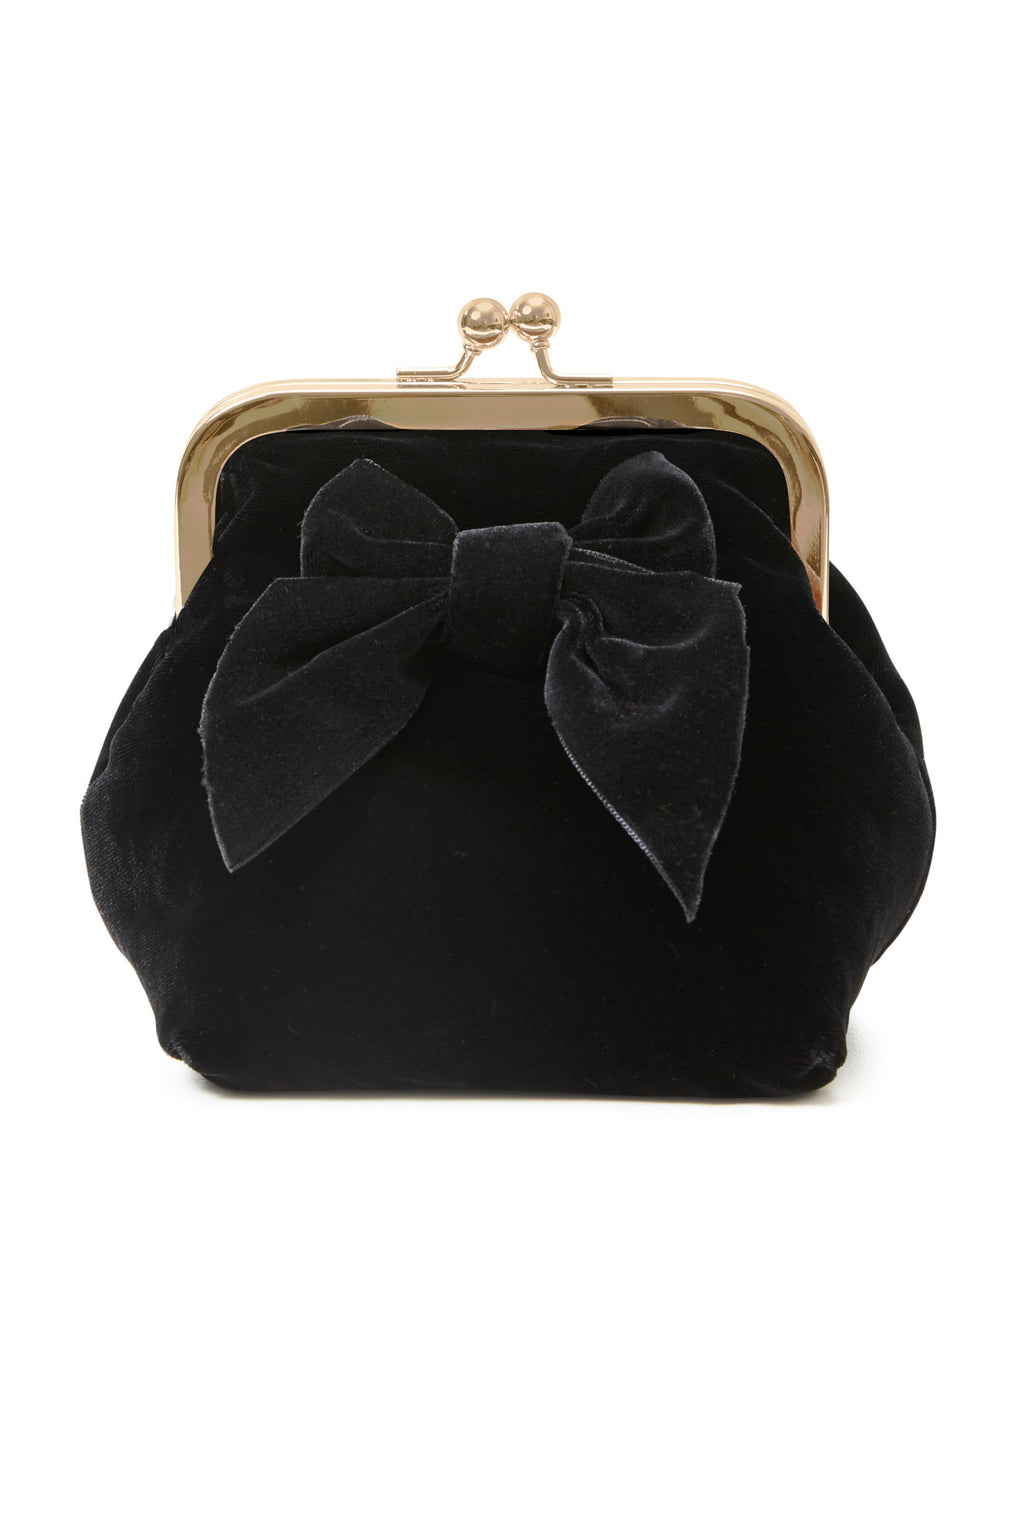 Sonja Love velour clutch - Sort